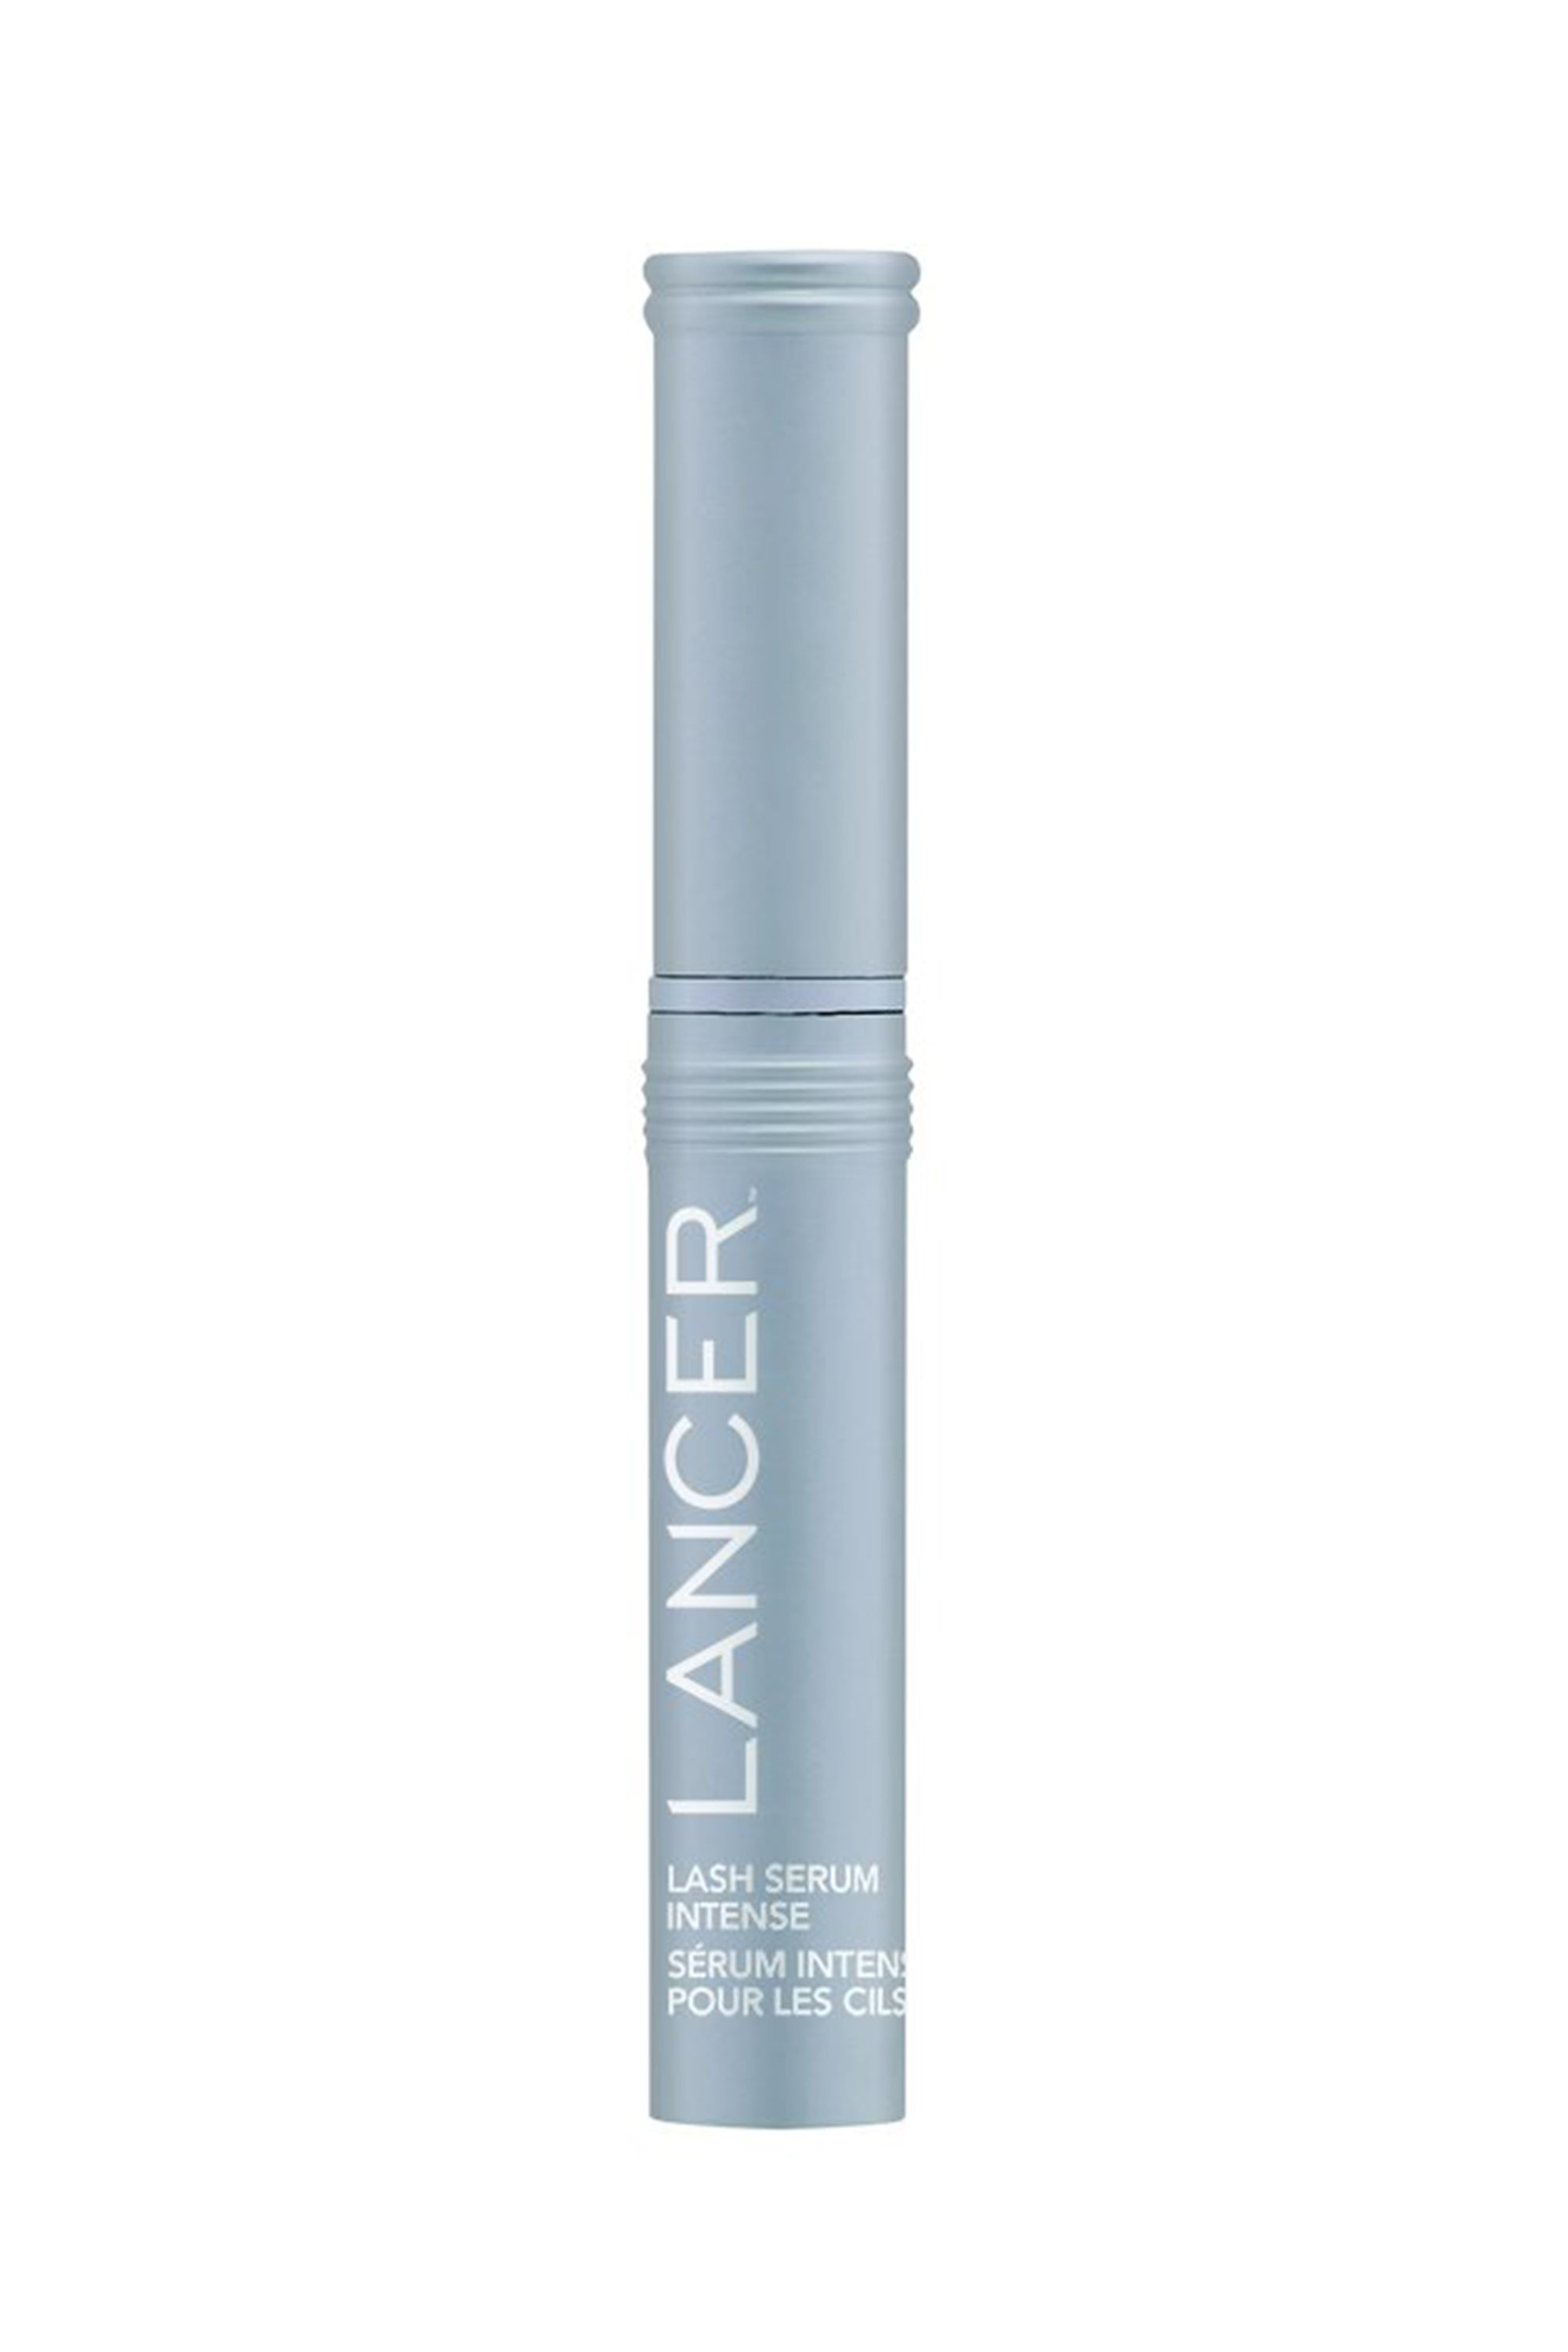 """<p><span>Packed with serious skincare ingredients, like polypeptides, biotin and panthenol, this pricey option does wonders for the littlest of lashes.</span></p>    <p><em data-redactor-tag=""""em"""" data-verified=""""redactor"""">$150, </em><a href=""""http://www.sephora.com/lash-serum-intense-P414108?skuId=1886084&icid2=products%20grid:p414108"""" target=""""_blank"""" data-tracking-id=""""recirc-text-link""""><em data-redactor-tag=""""em"""" data-verified=""""redactor"""">sephora.com</em></a></p>"""